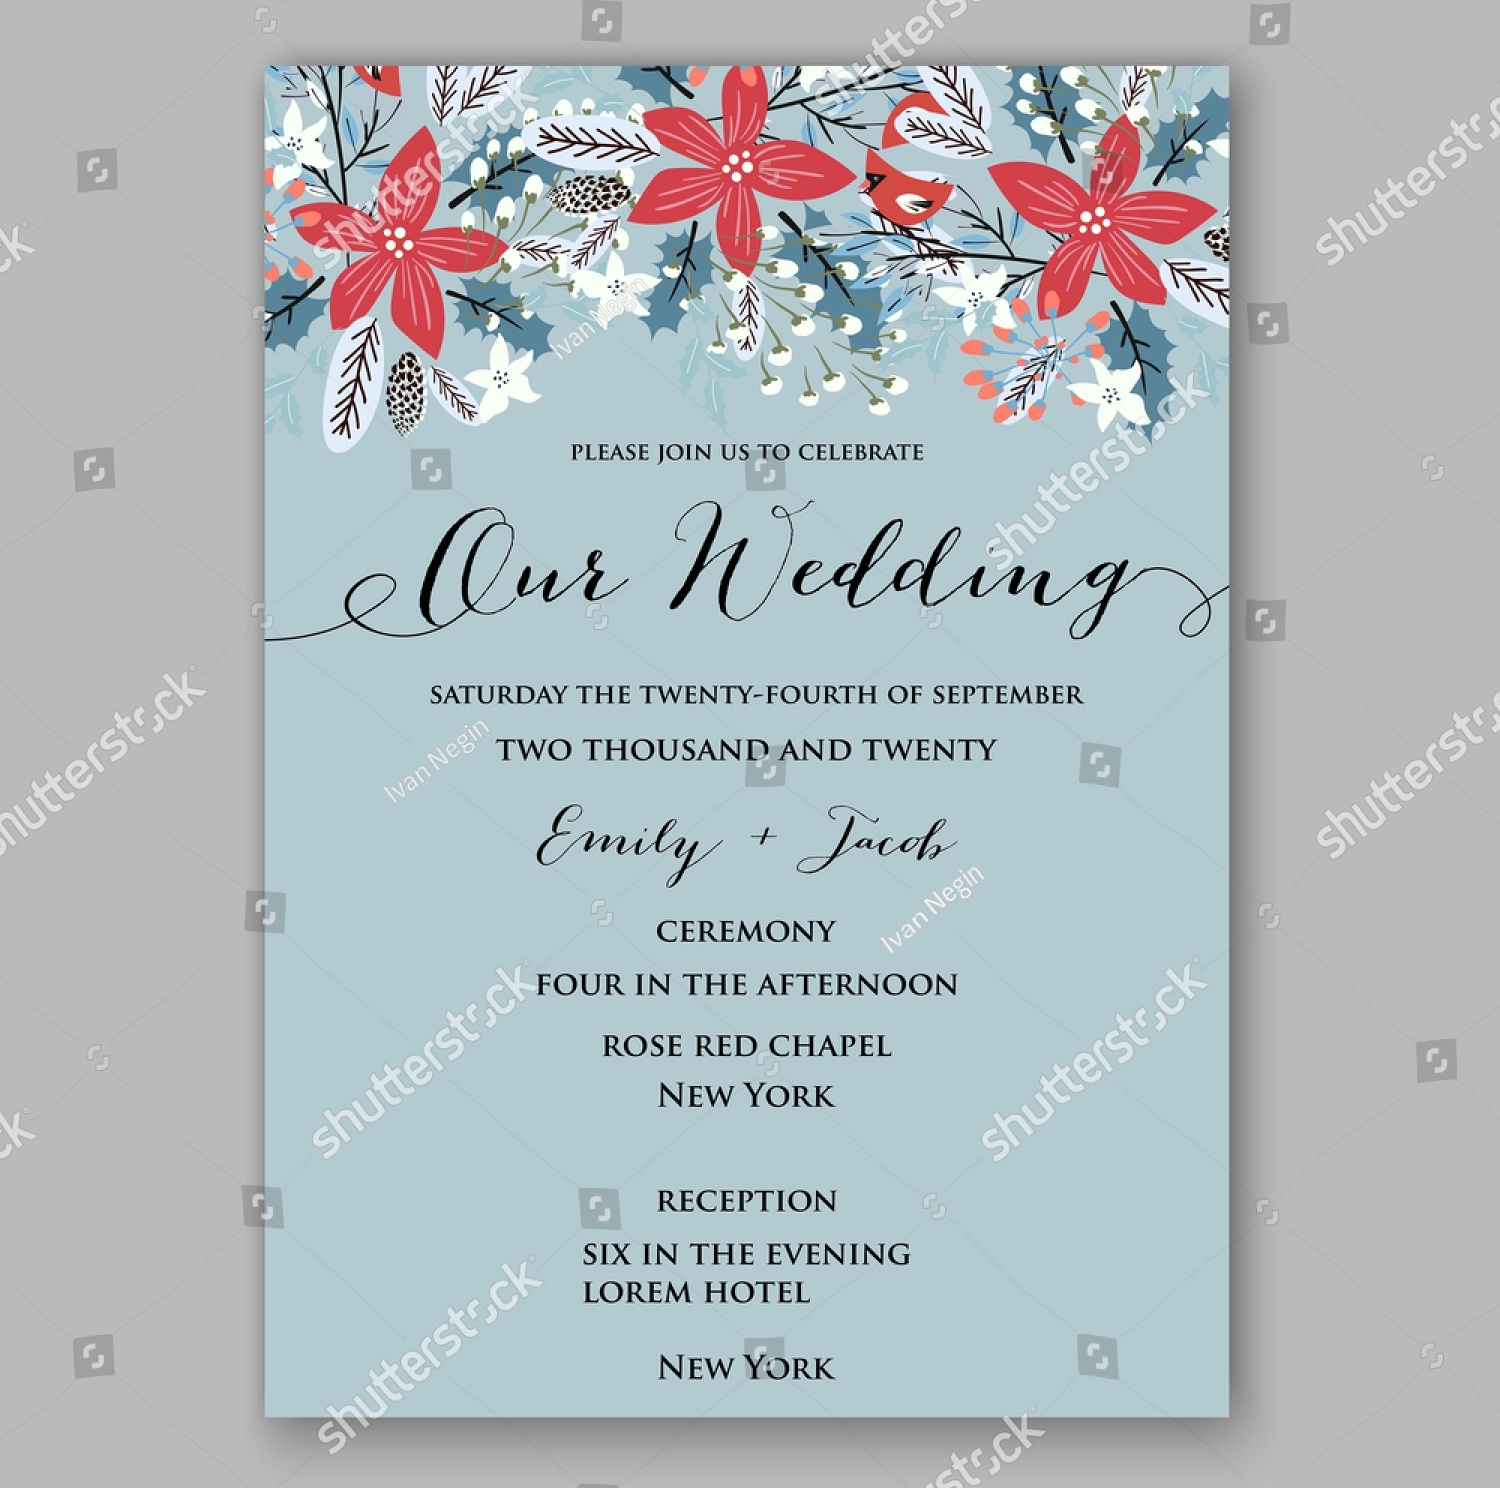 floral winter wedding invitation